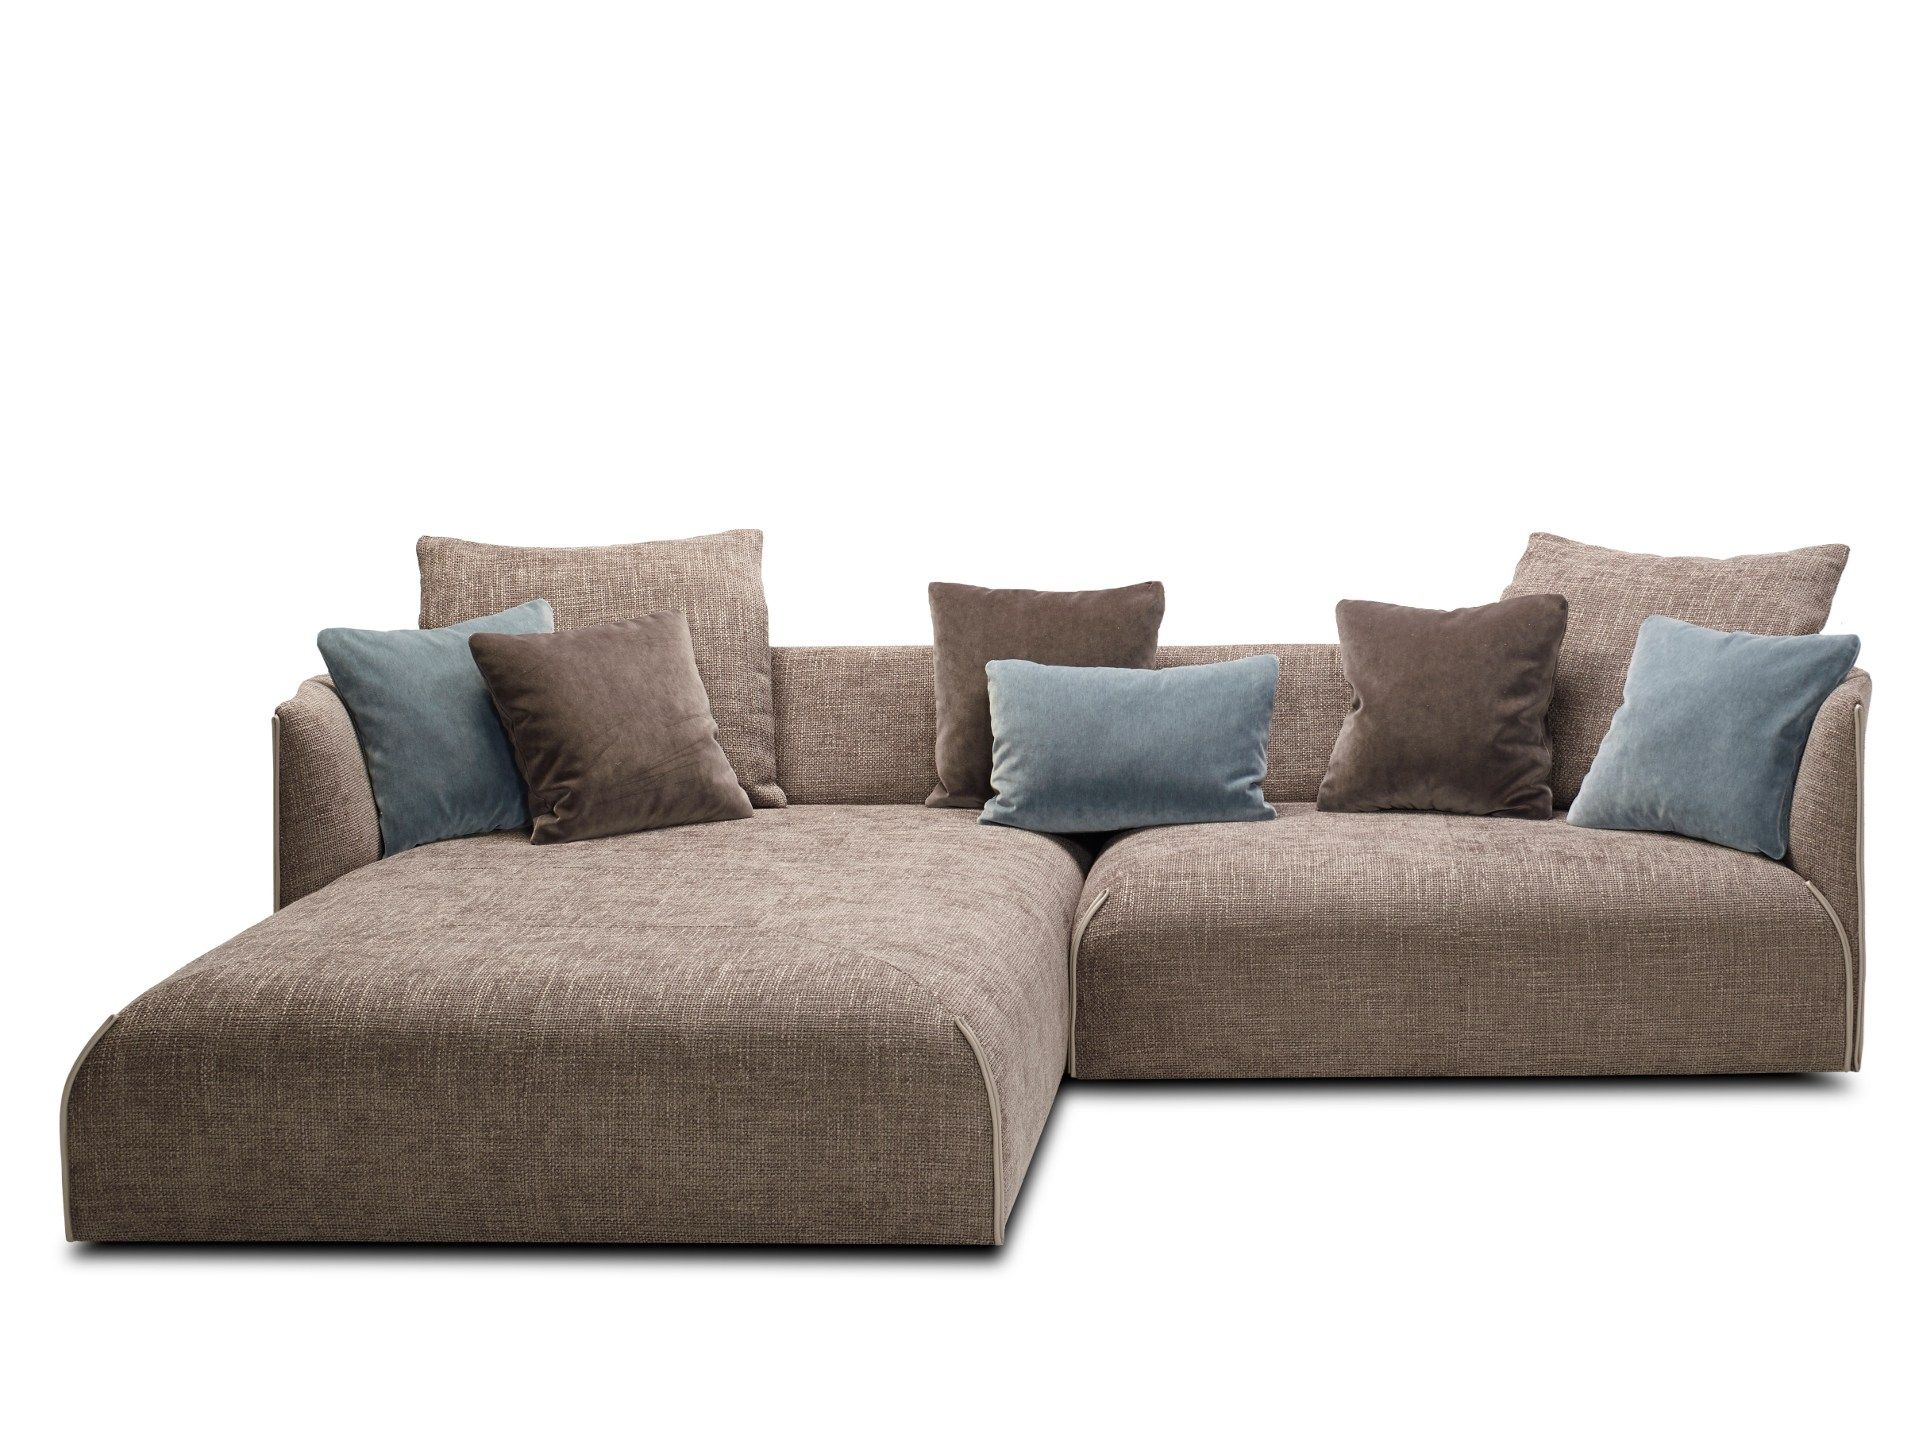 Download The Catalogue And Request Prices Of Gitano By Jori Fabric Sofa With Chaise Longue Design Jean Pierre Audeber Sofa Material Fabric Sofa Sofa Furniture